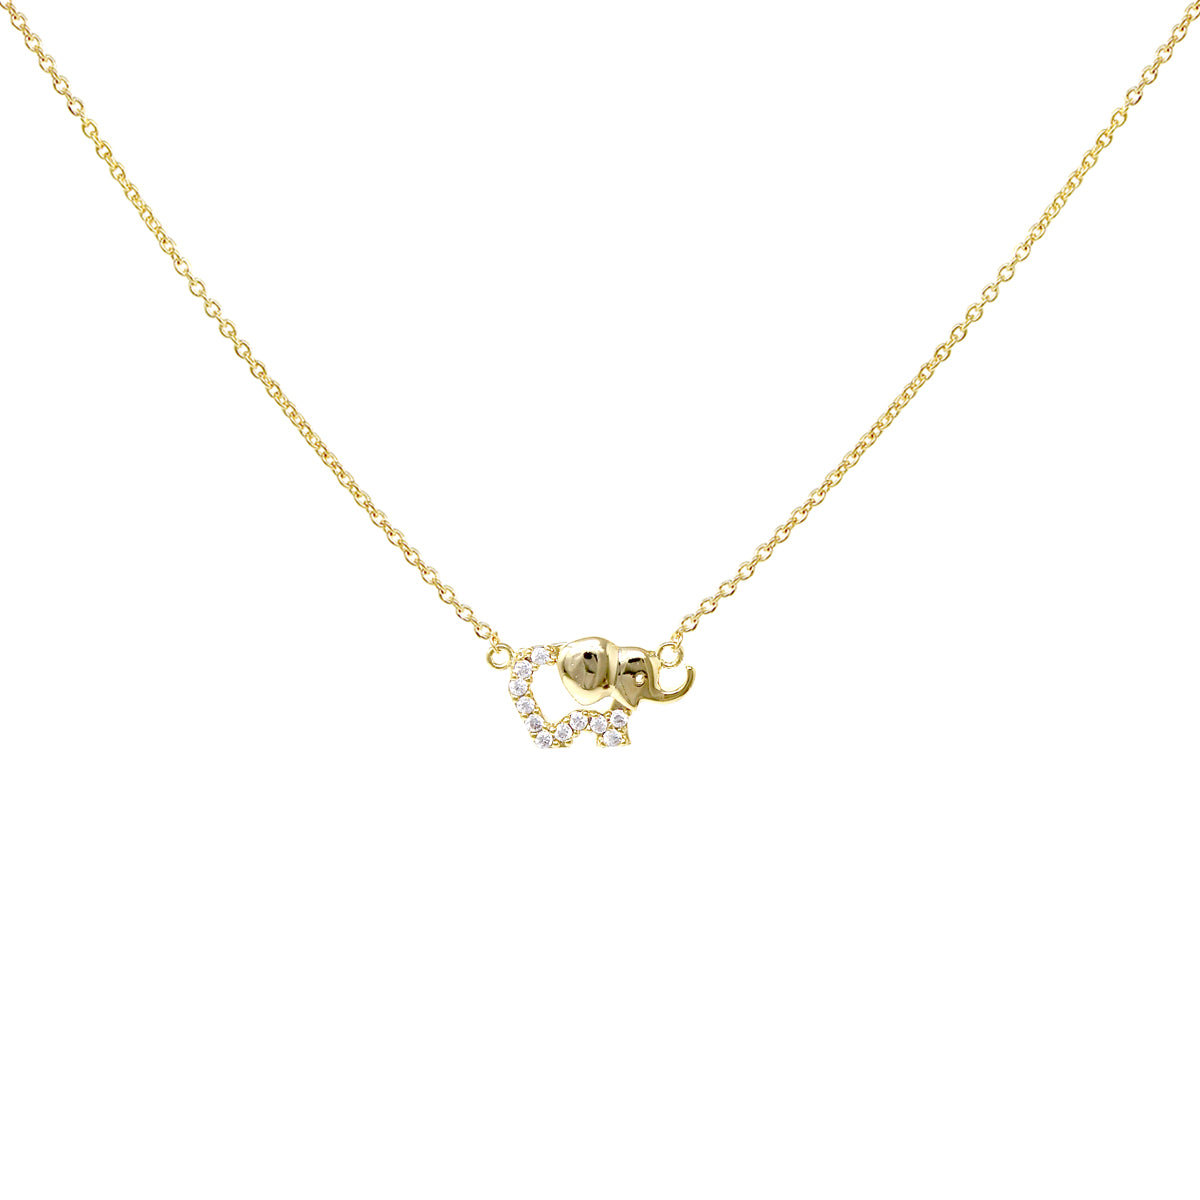 Cubic Zirconia Pave Elephant Pendant Short Necklace